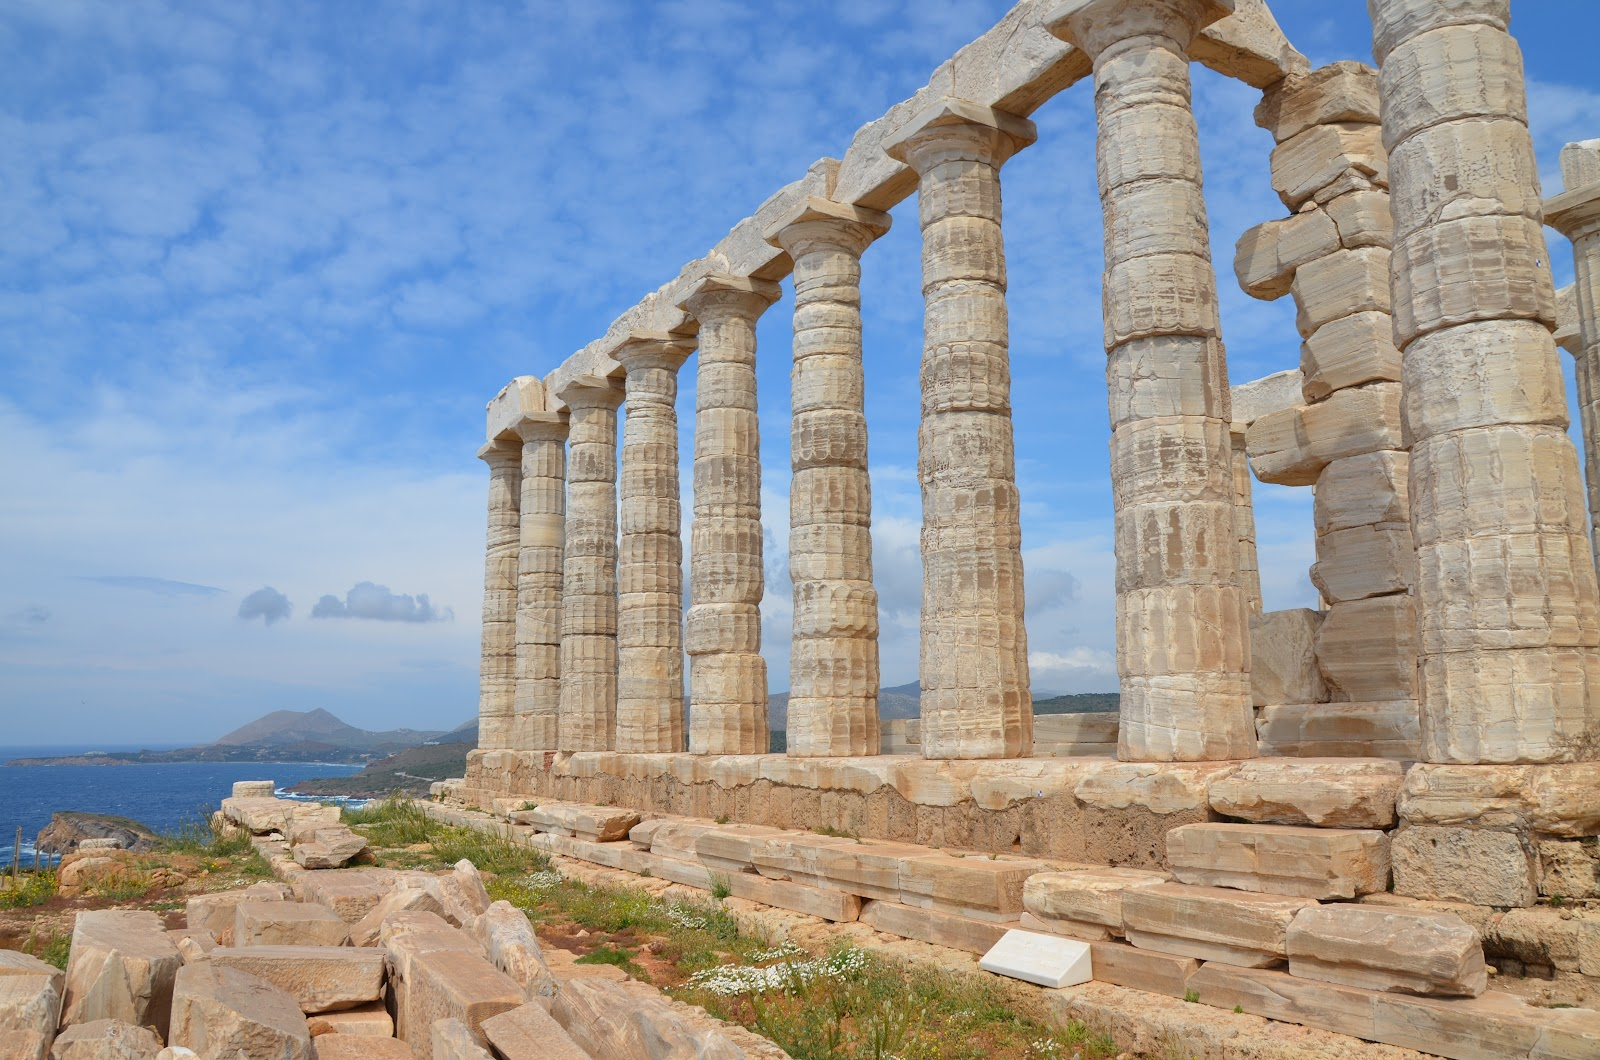 Temple_of_Poseidon,_built_around_444_-_440_BC,_Cape_Sounion,_Greece_(13896684725).jpg